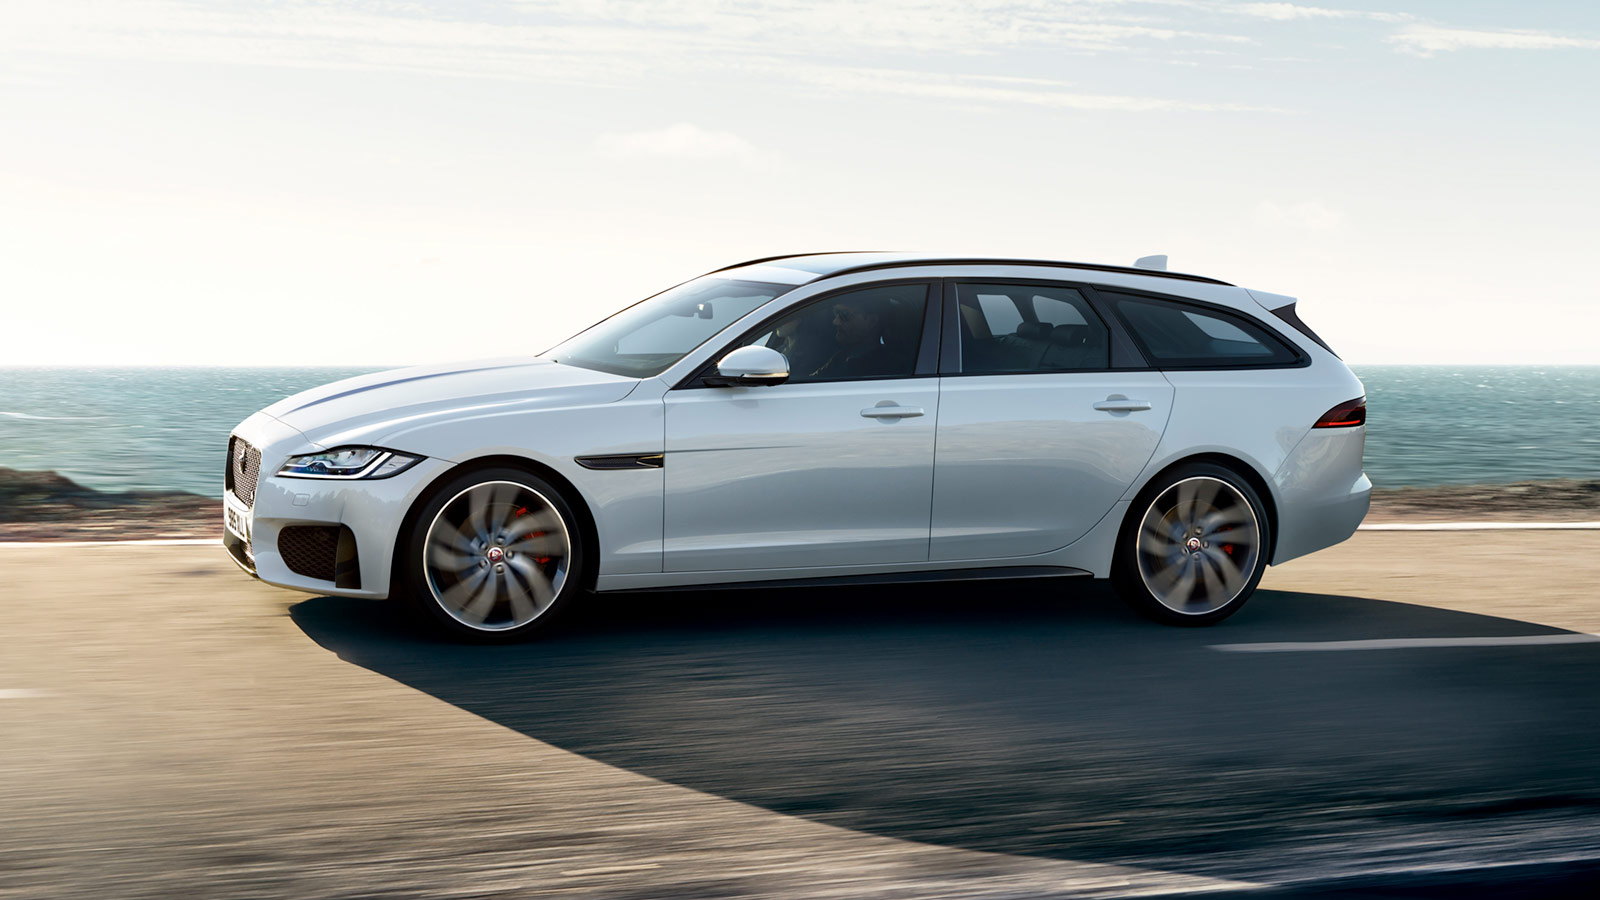 XF Sportbrake Driving By Sea.